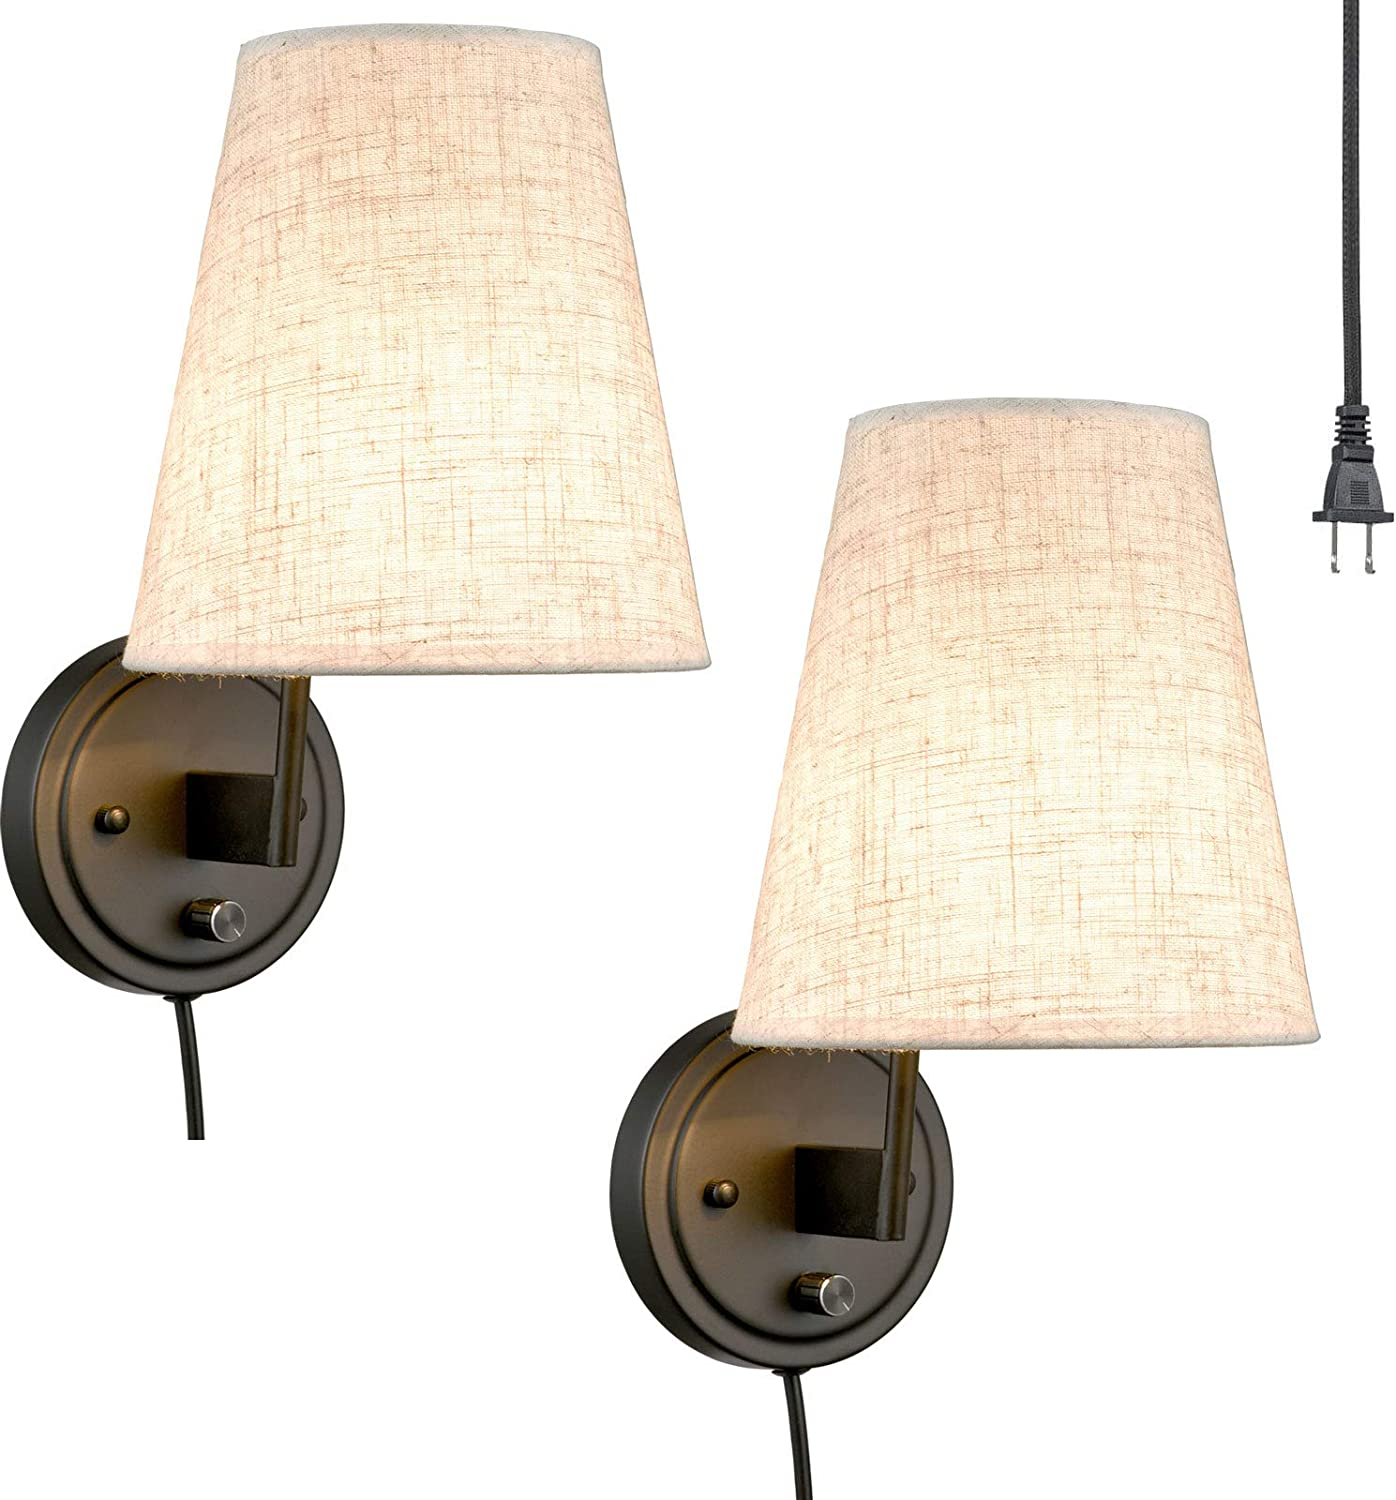 Bedroom Reading Plug-in Wall Lamp Fabric Shade Wall Sconces Light Set of 2